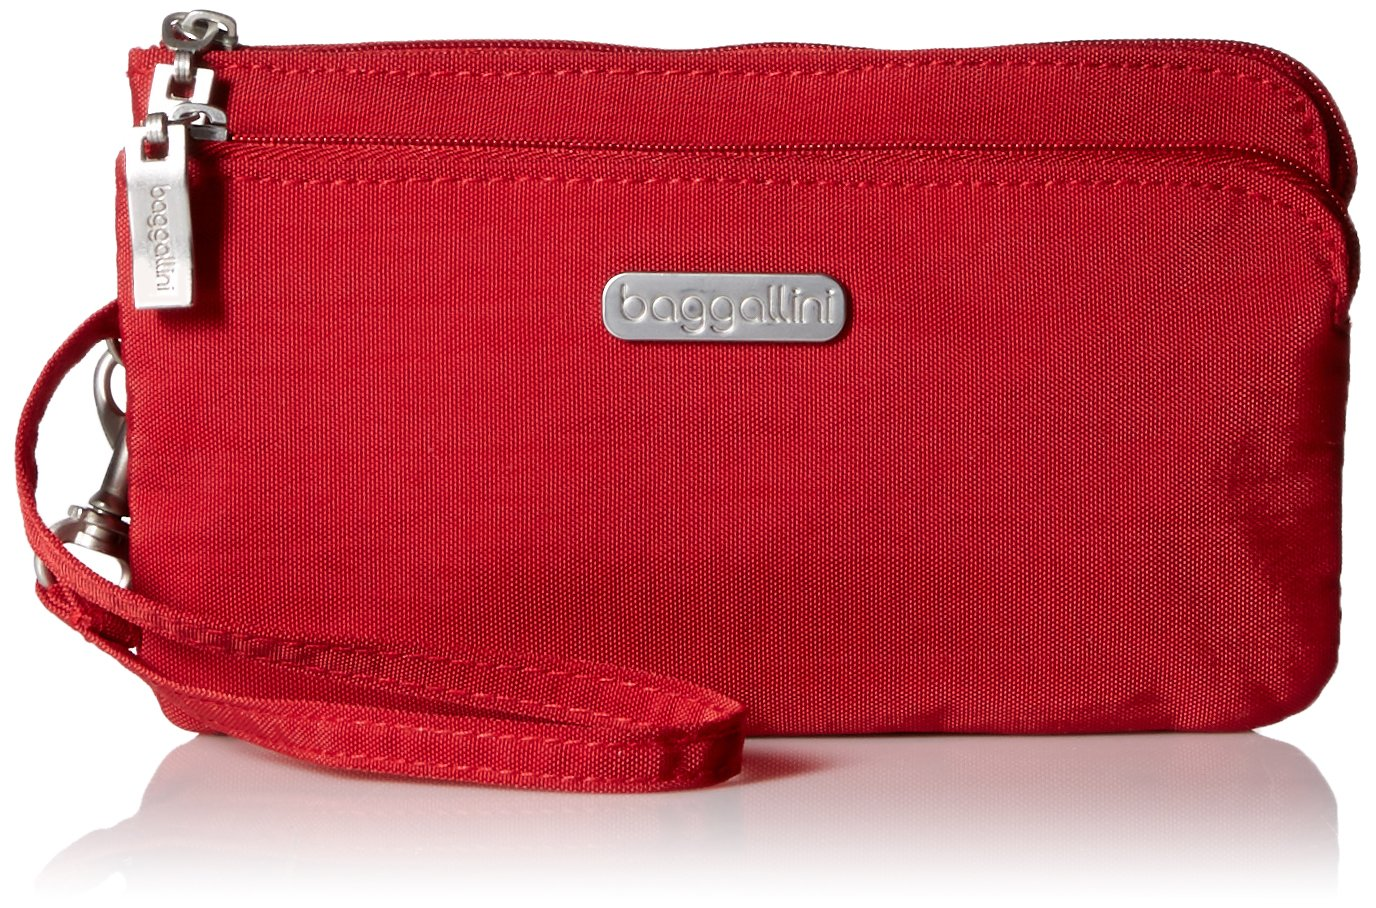 Baggallini Double Zip Wristlet with RFID Protection - Lightweight Wristlet with Zipped Compartments for Smart Phones and More by Baggallini